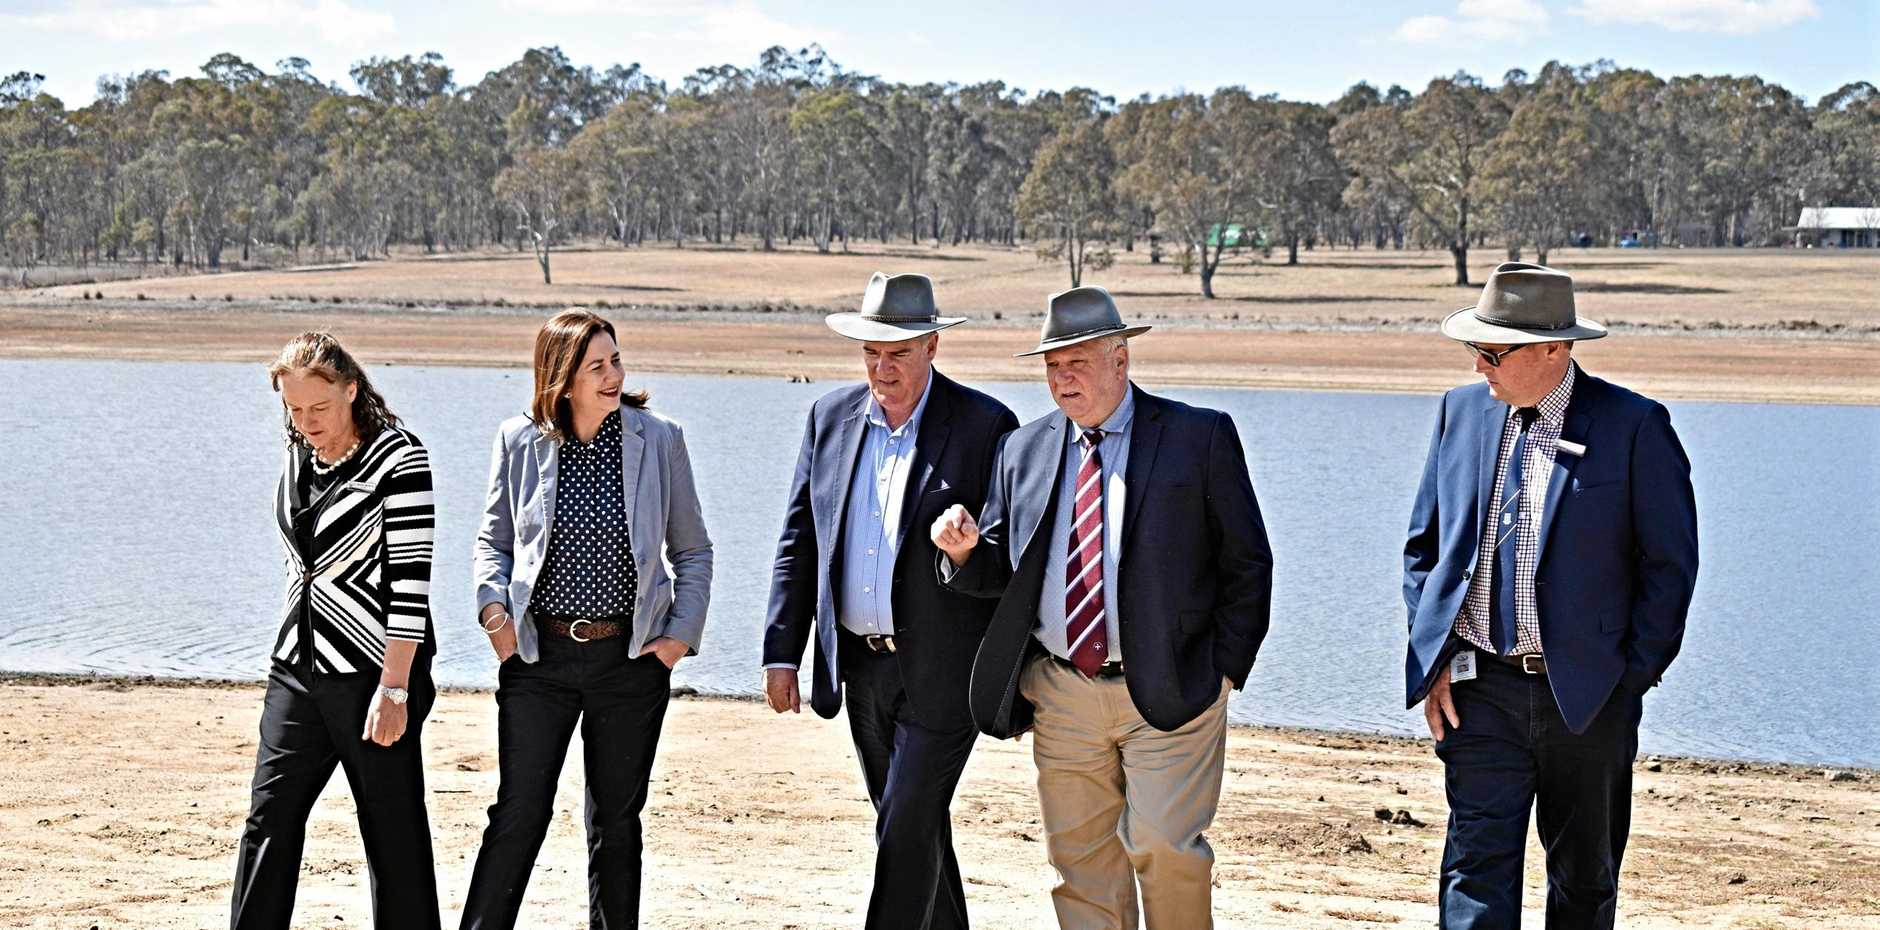 SEEING UP CLOSE: Queensland Premier Annastacia Palaszczuk visited Storm King Dam with Minister for Agricultural Industry Development and Fisheries Mark Furner and Southern Downs councillors Cameron Gow, Marika McNichol and Vic Pennisi.